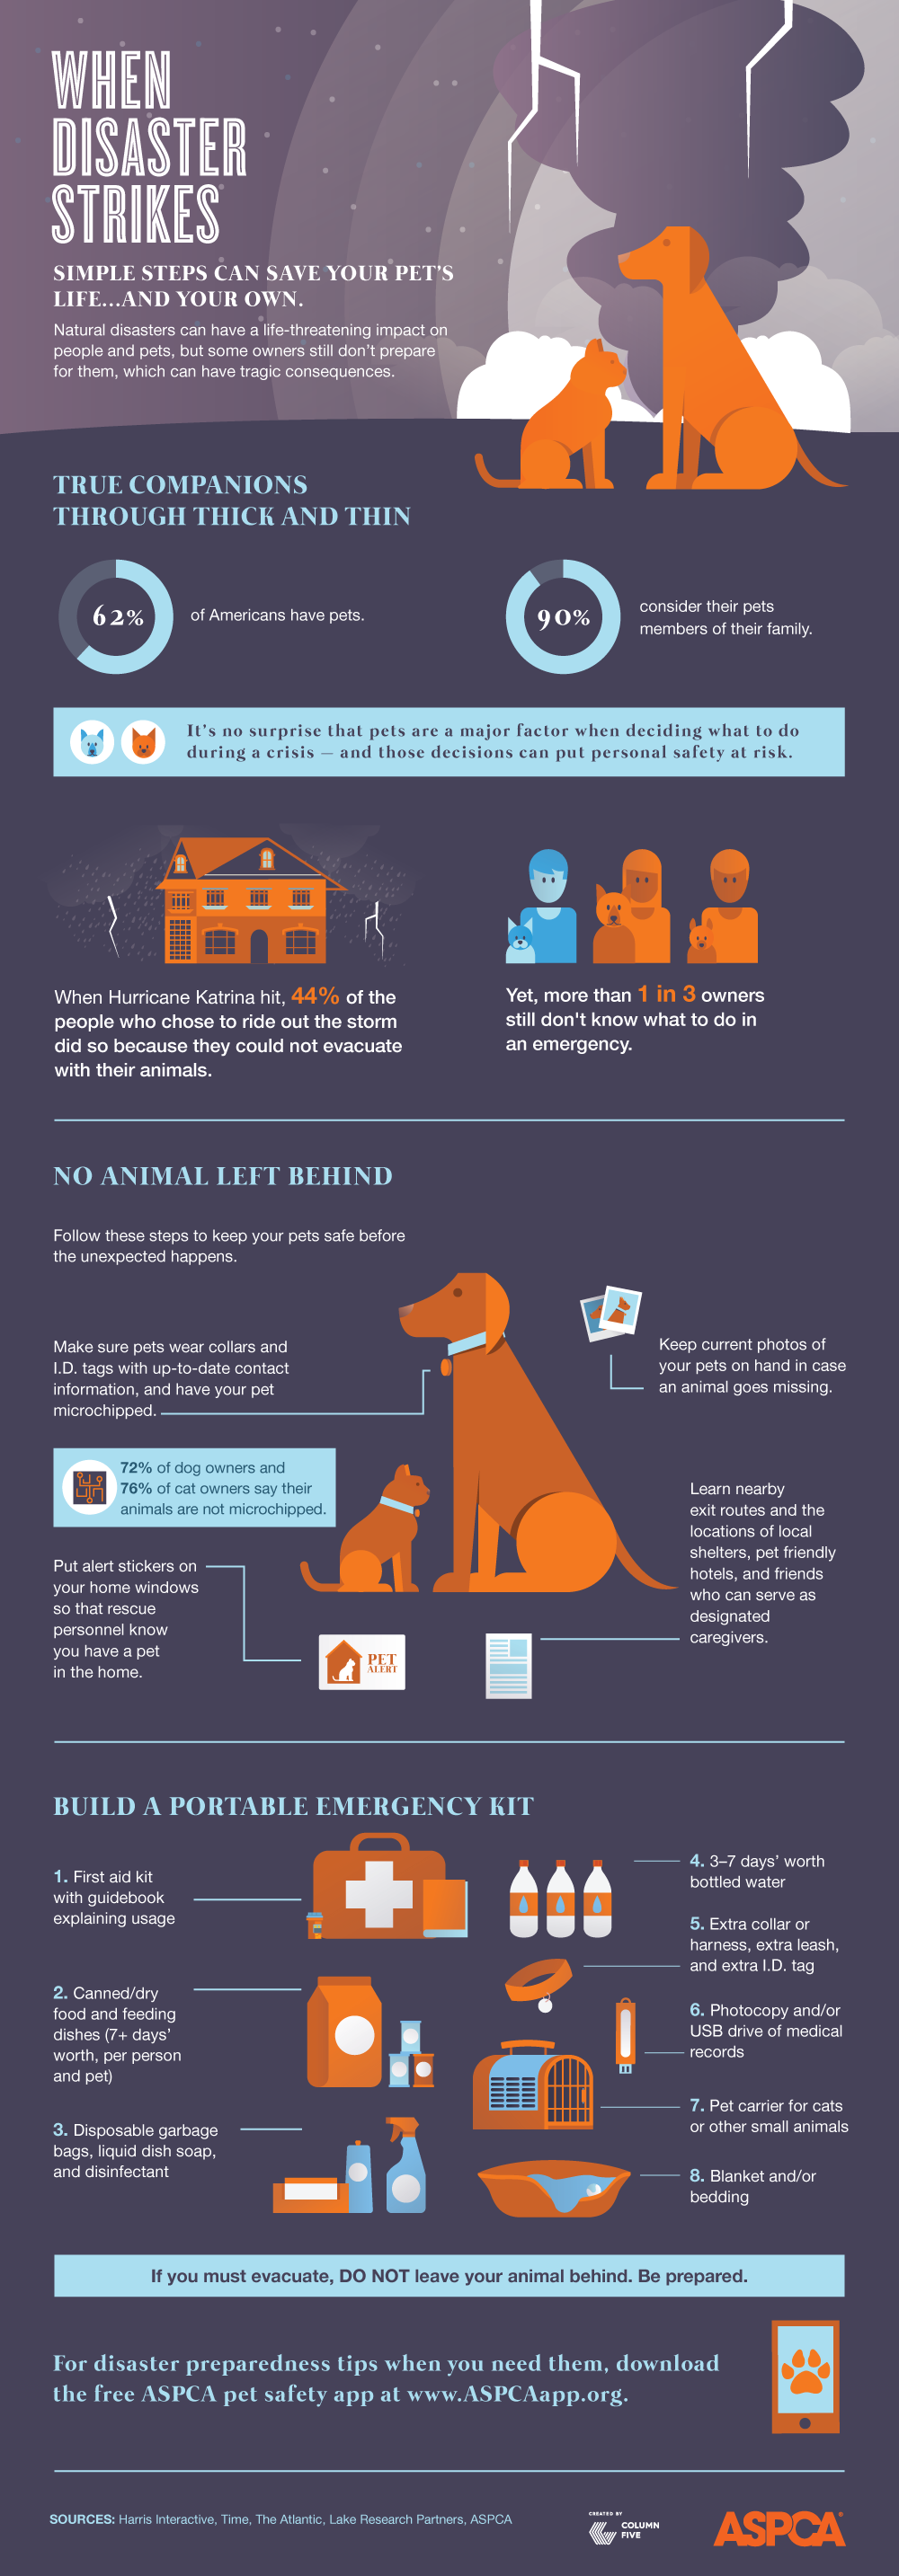 Aspca national disaster infographic